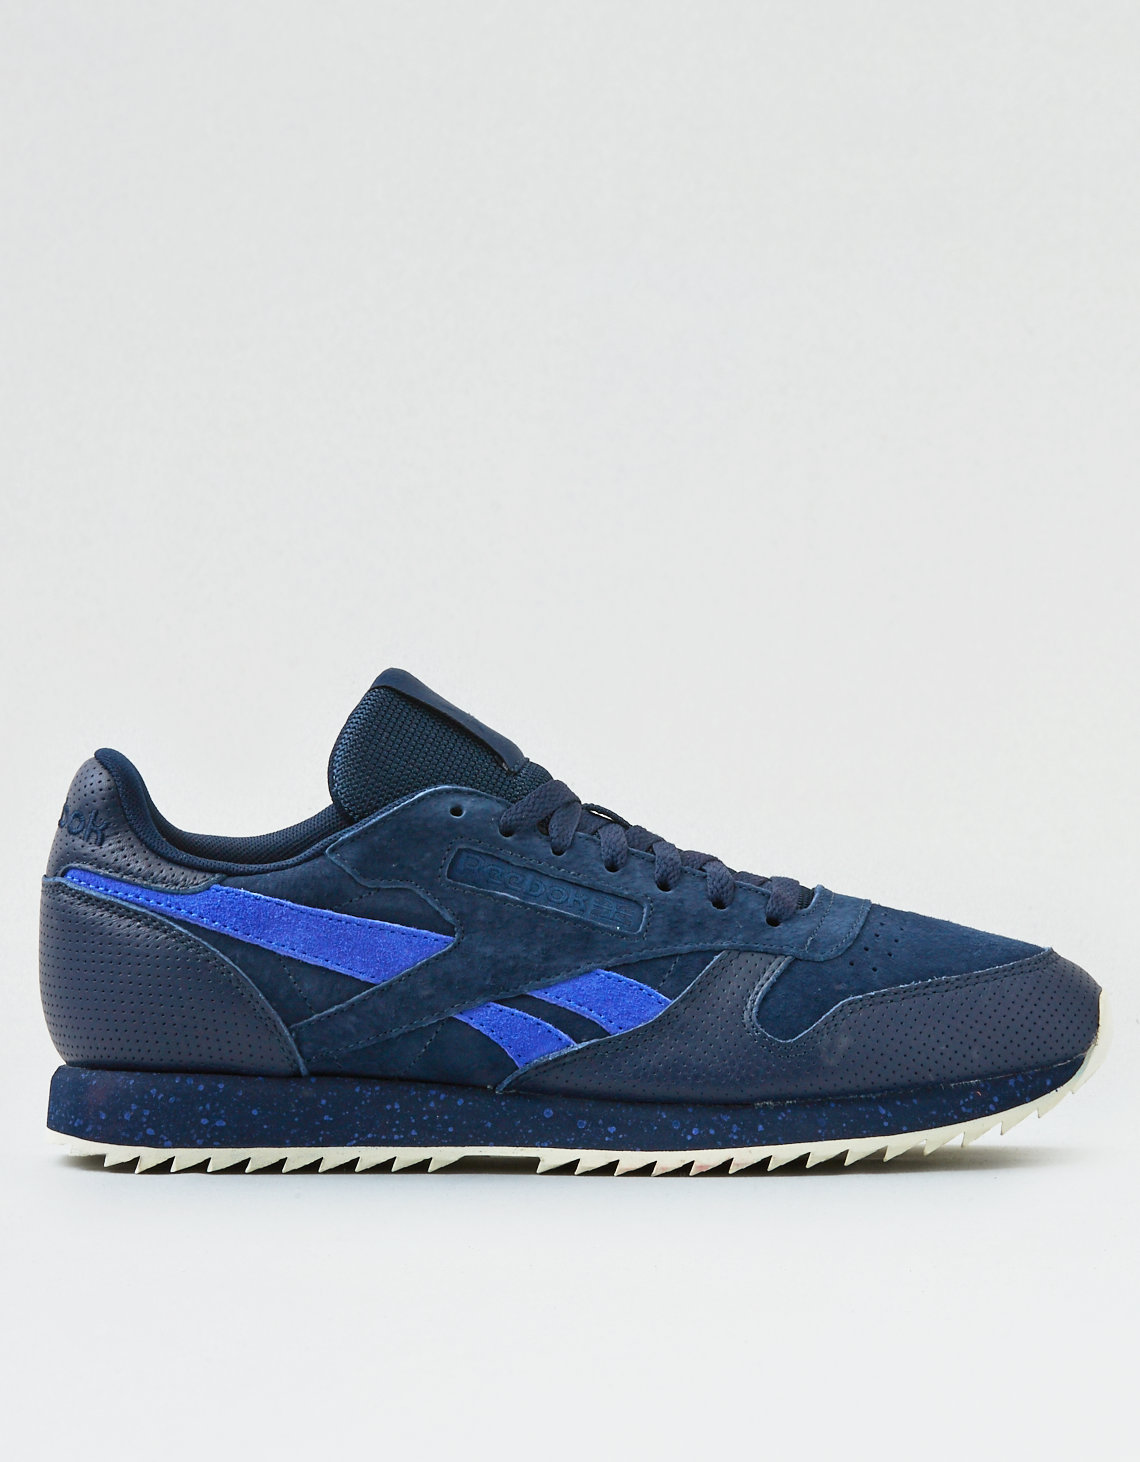 REEBOK CLASSIC LEATHER RIPPLE SM SNEAKER. Placeholder image. Product Image